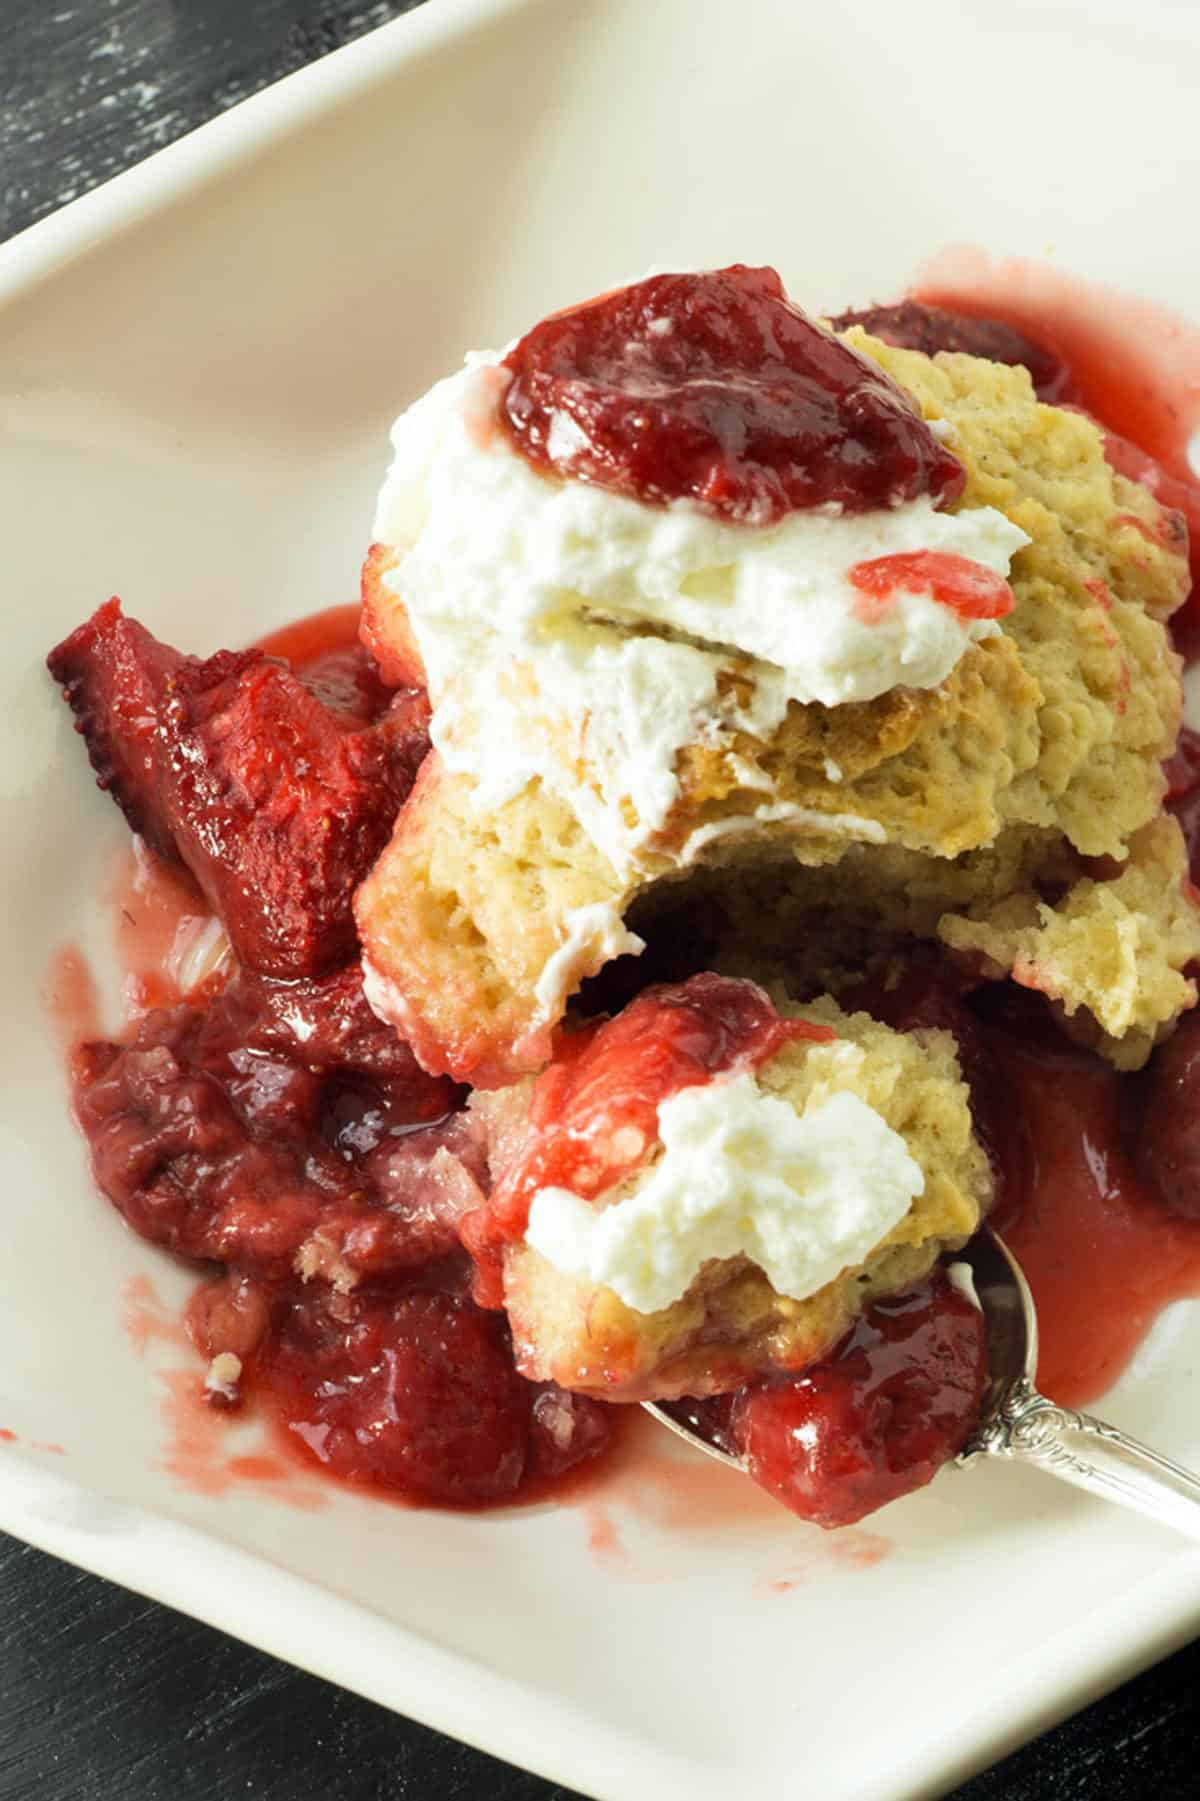 A serving of strawberry cobbler with whipped cream